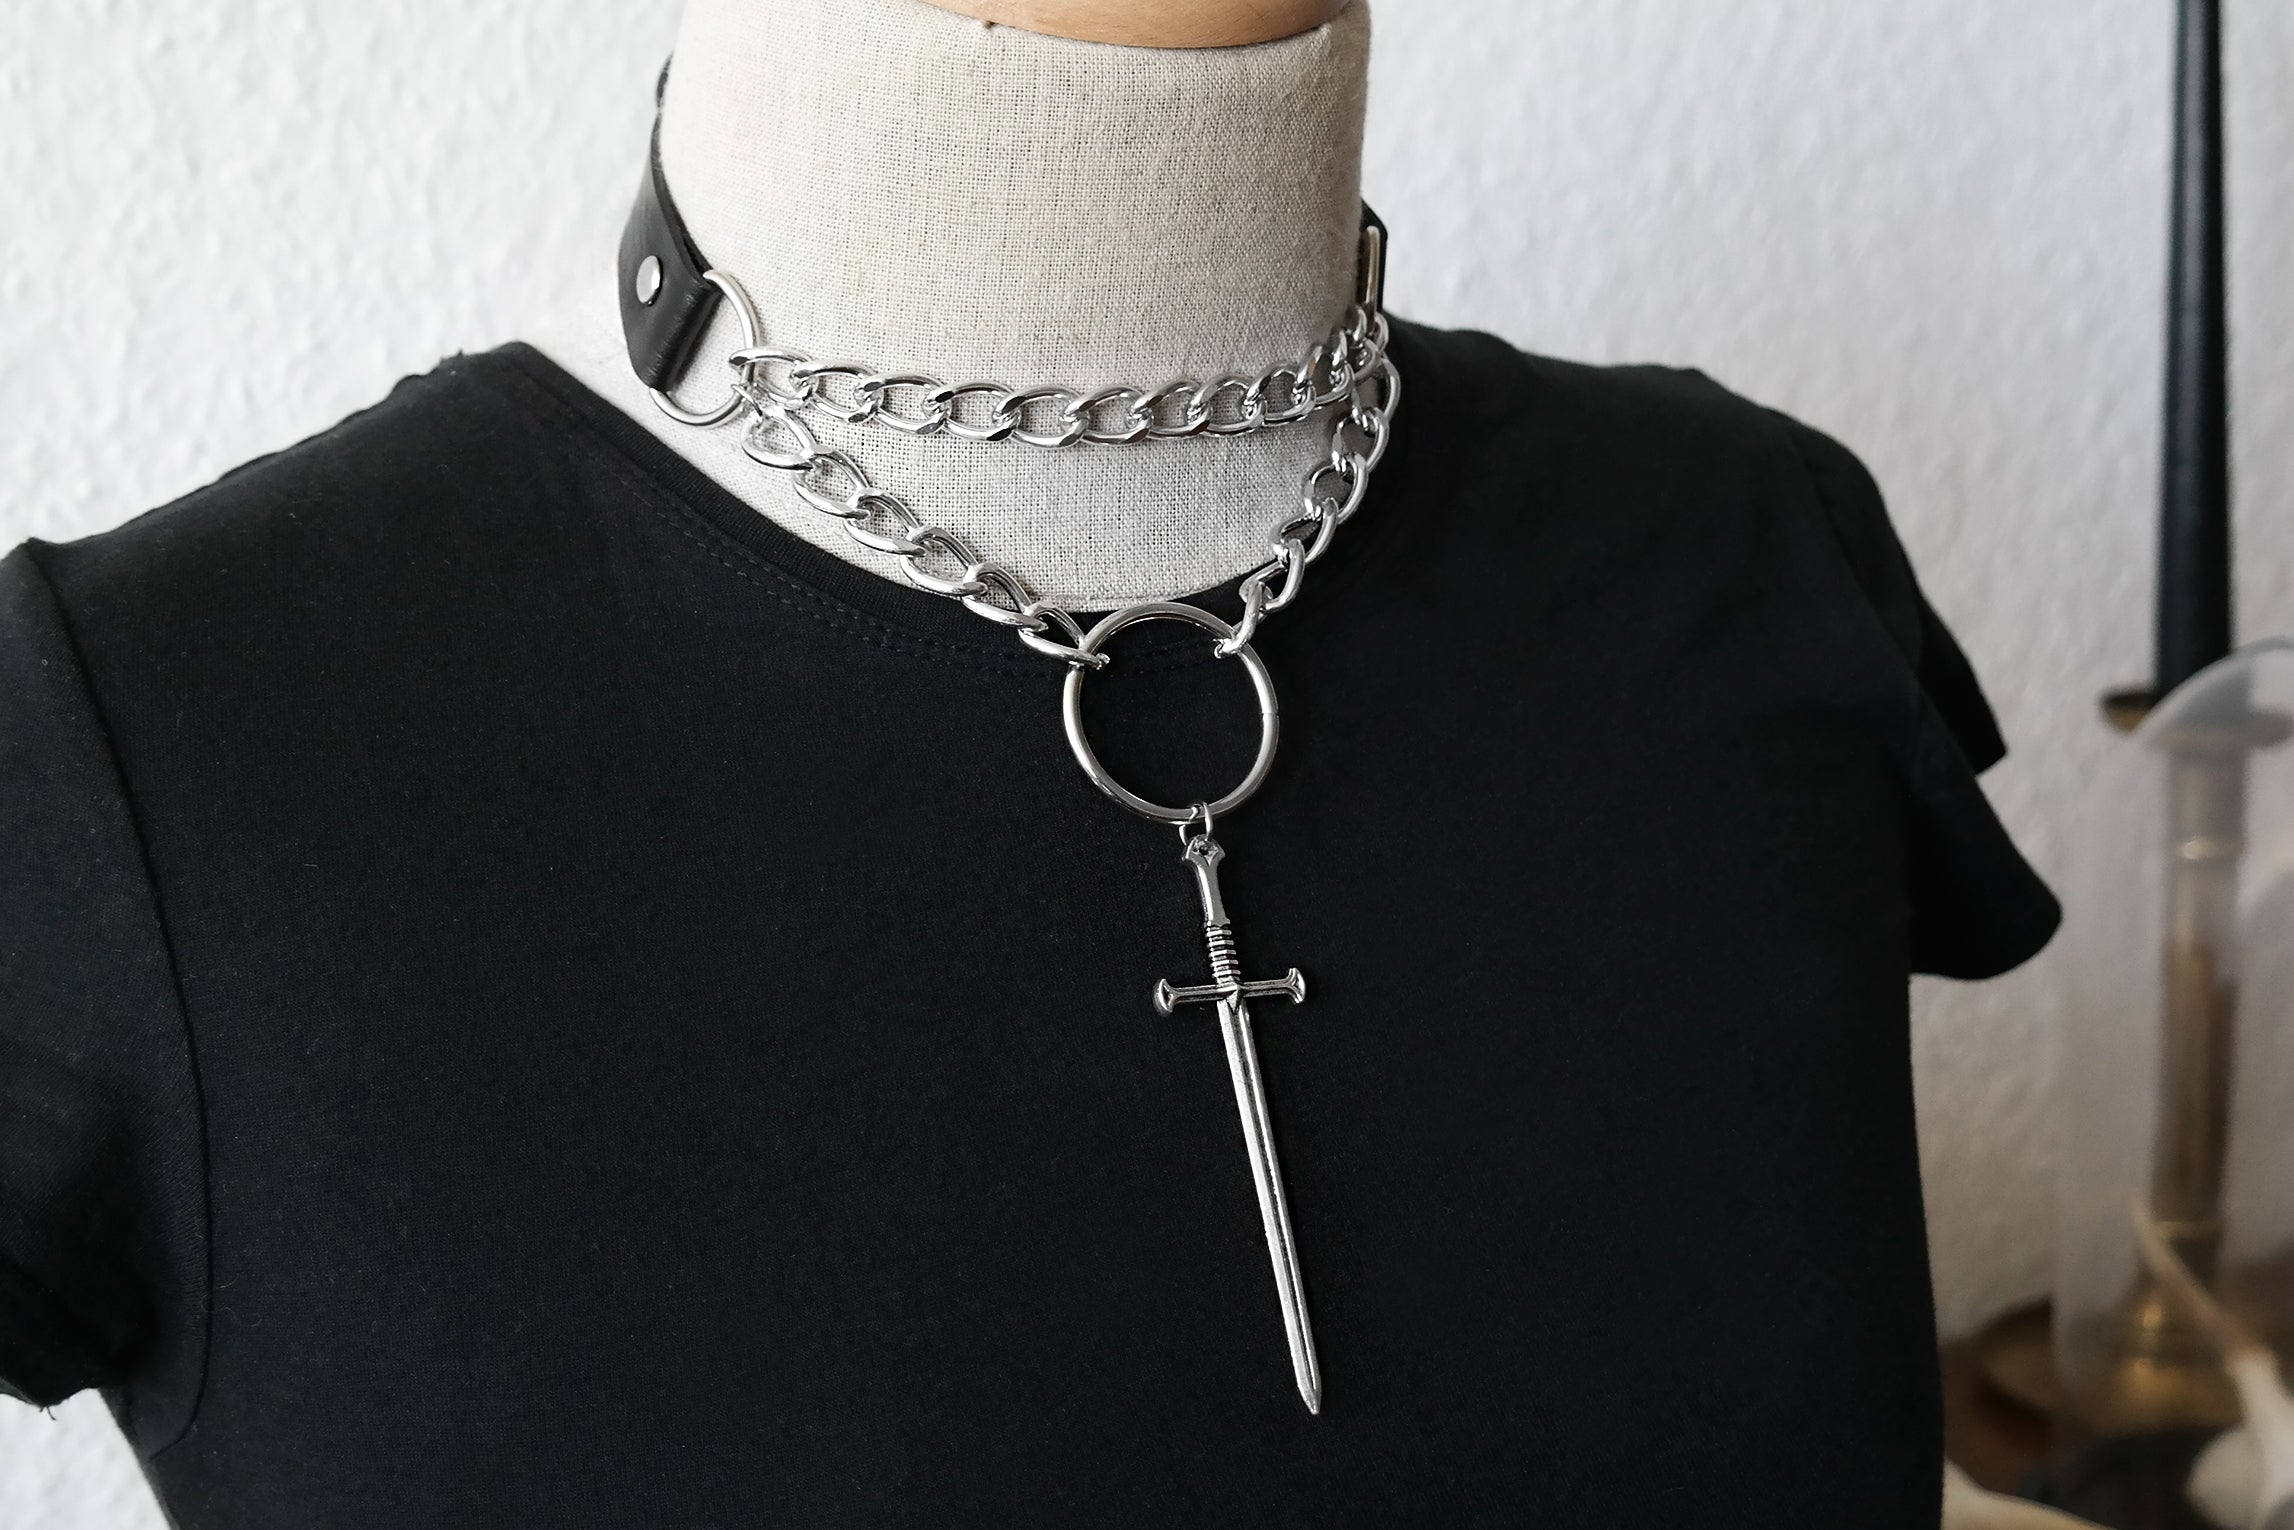 Black Battle Choker with Chains Sword | Fux Jewellery